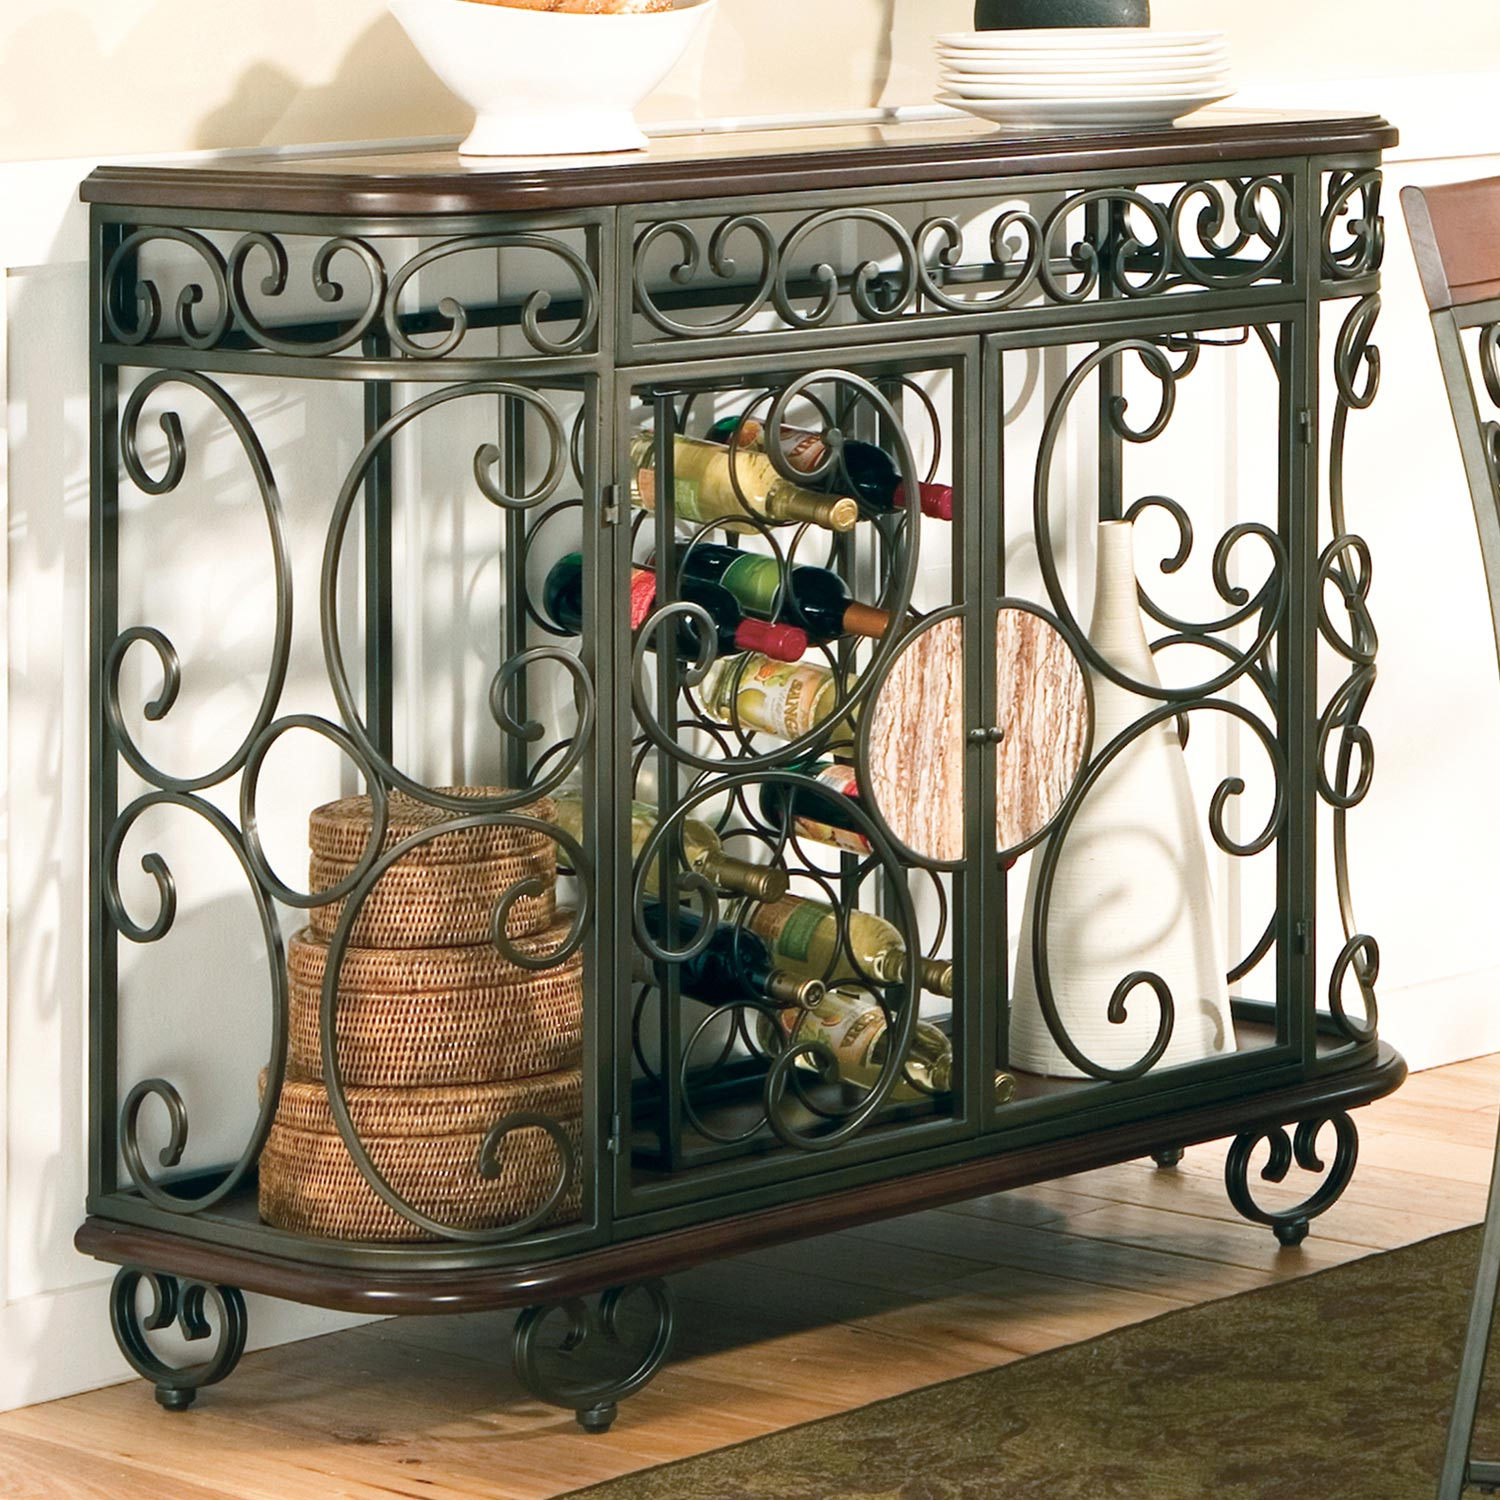 Thompson 5 Piece Counter Dining Set - Wrought Iron, Wood - SSC-TP450-CTR-5PC